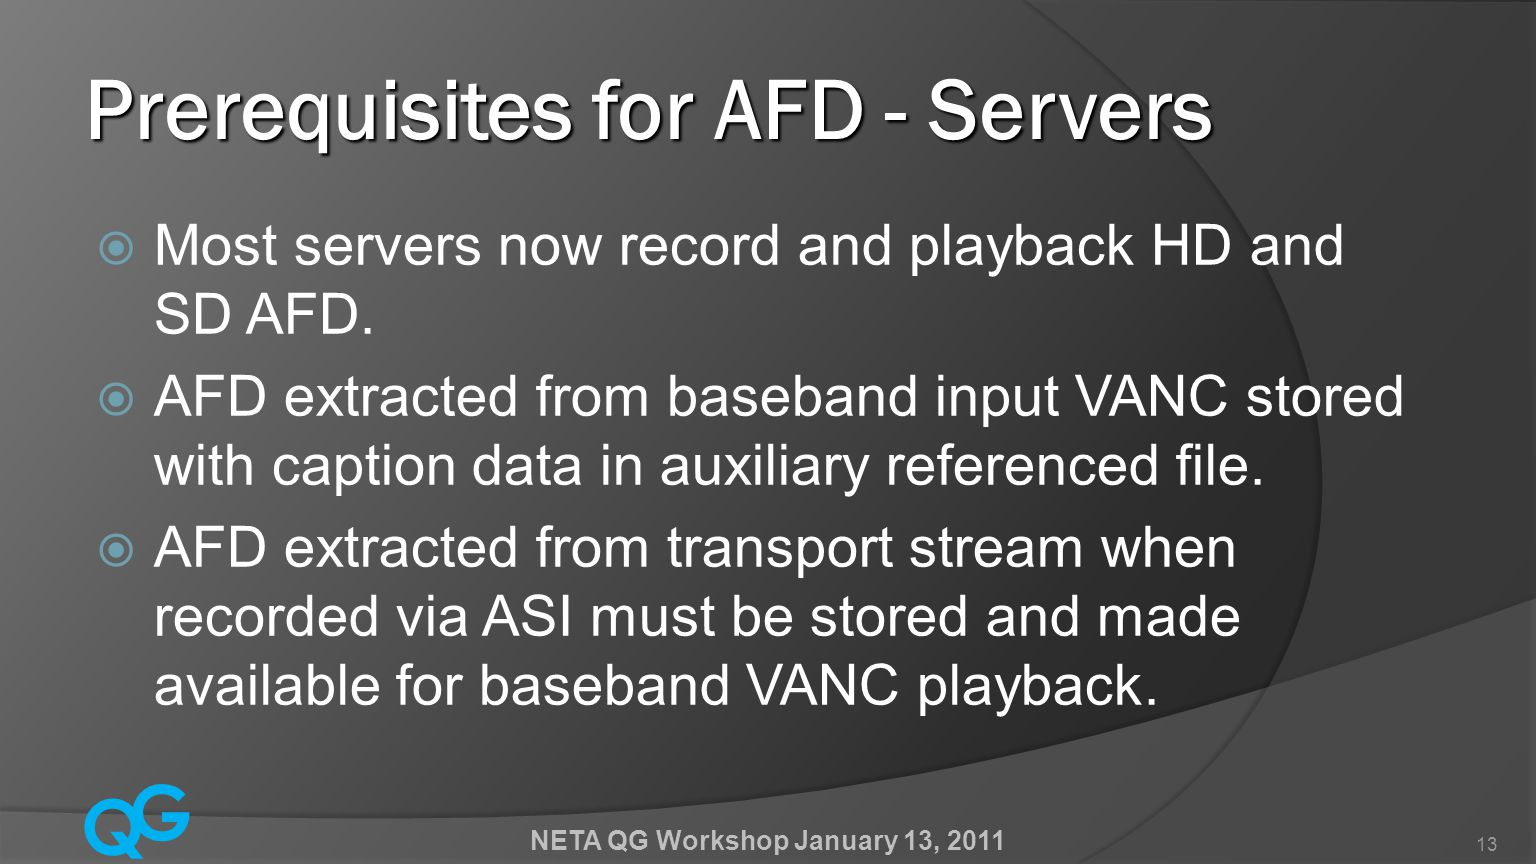 Q G NETA QG Workshop January 13, 2011 13 Prerequisites for AFD - Servers  Most servers now record and playback HD and SD AFD.